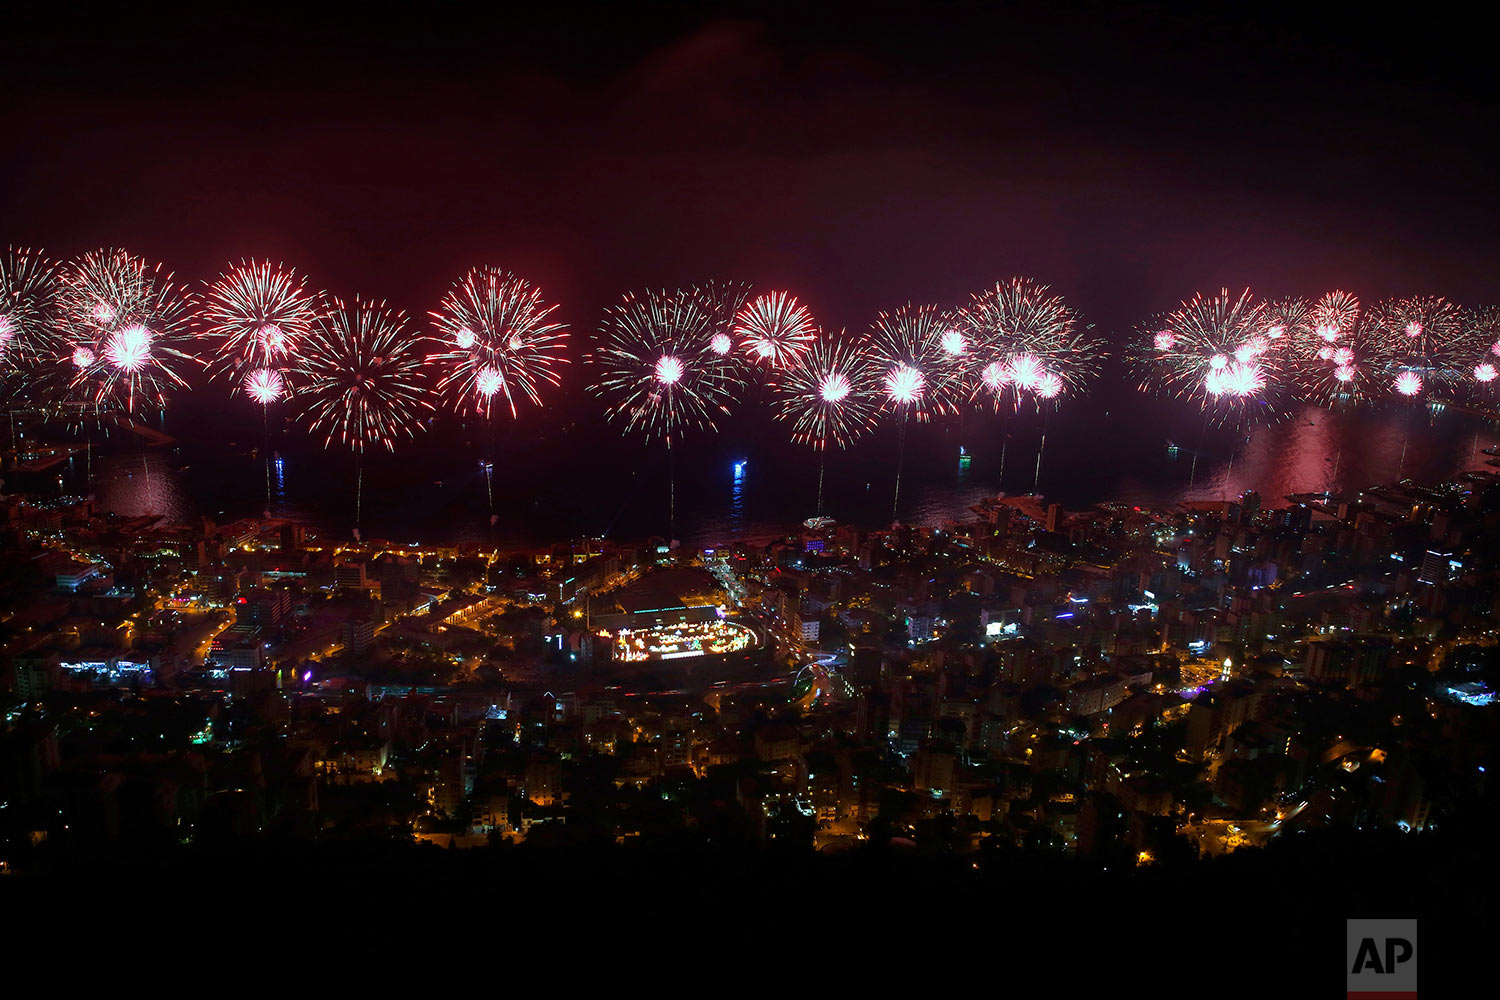 Fireworks explode over the coastal town of Jounieh, Lebanon, Saturday, July 15, 2017, during the city's international festival. The two-month annual festival includes concerts by local and international singers as well as plays and activities. (AP Photo/Bilal Hussein)